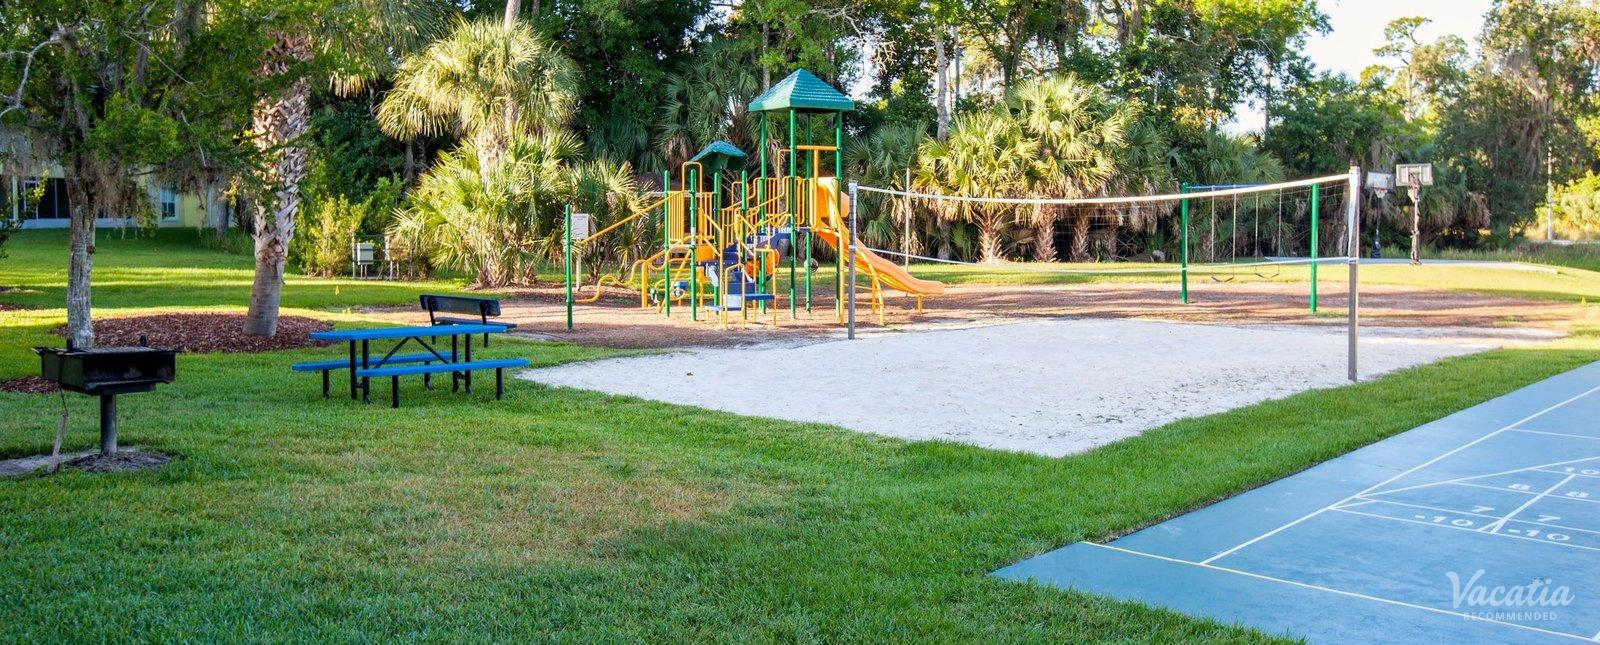 The Barefoot Suites playgrounds courts and games